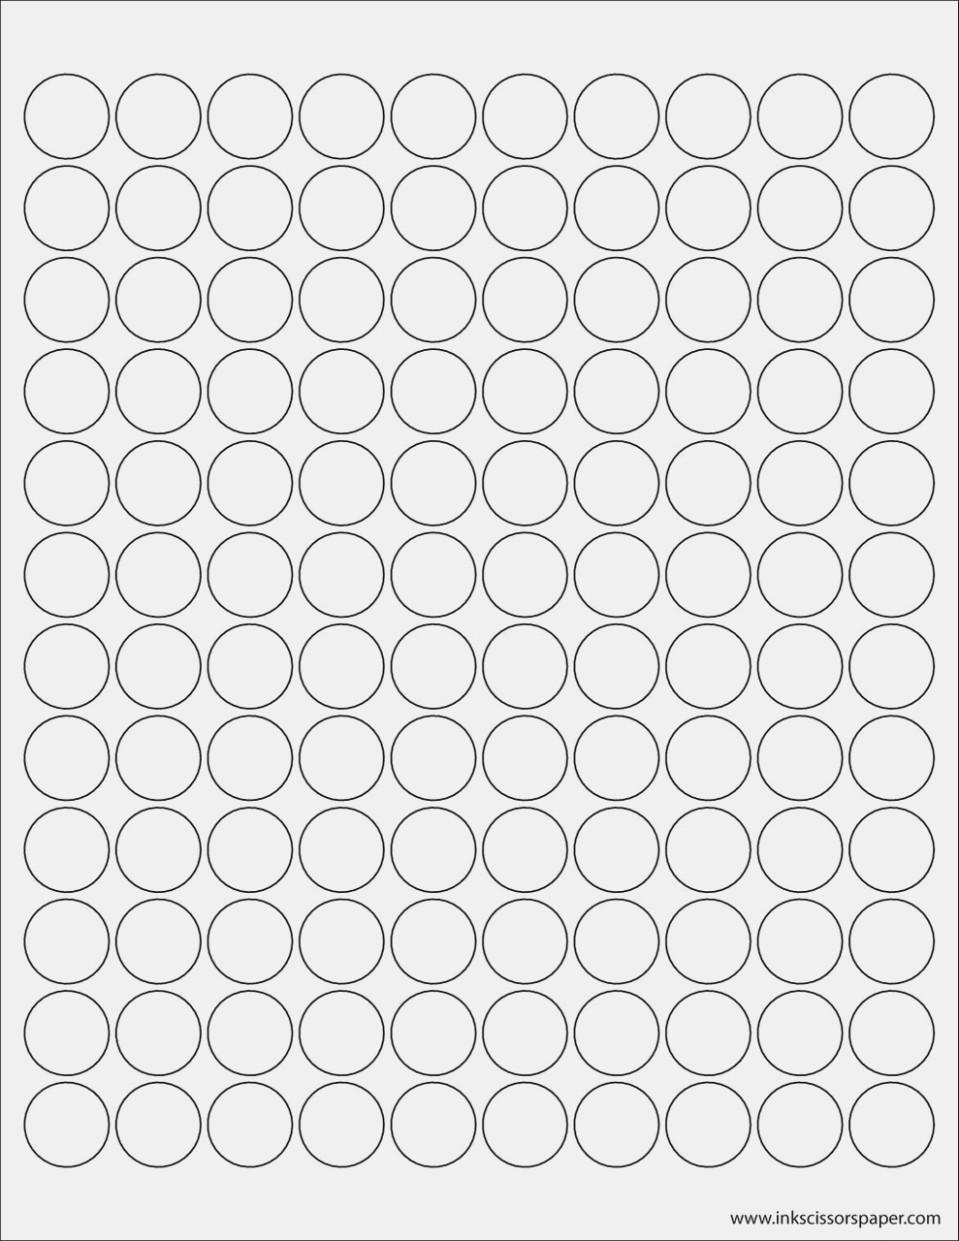 34 Inch Circle Label Template